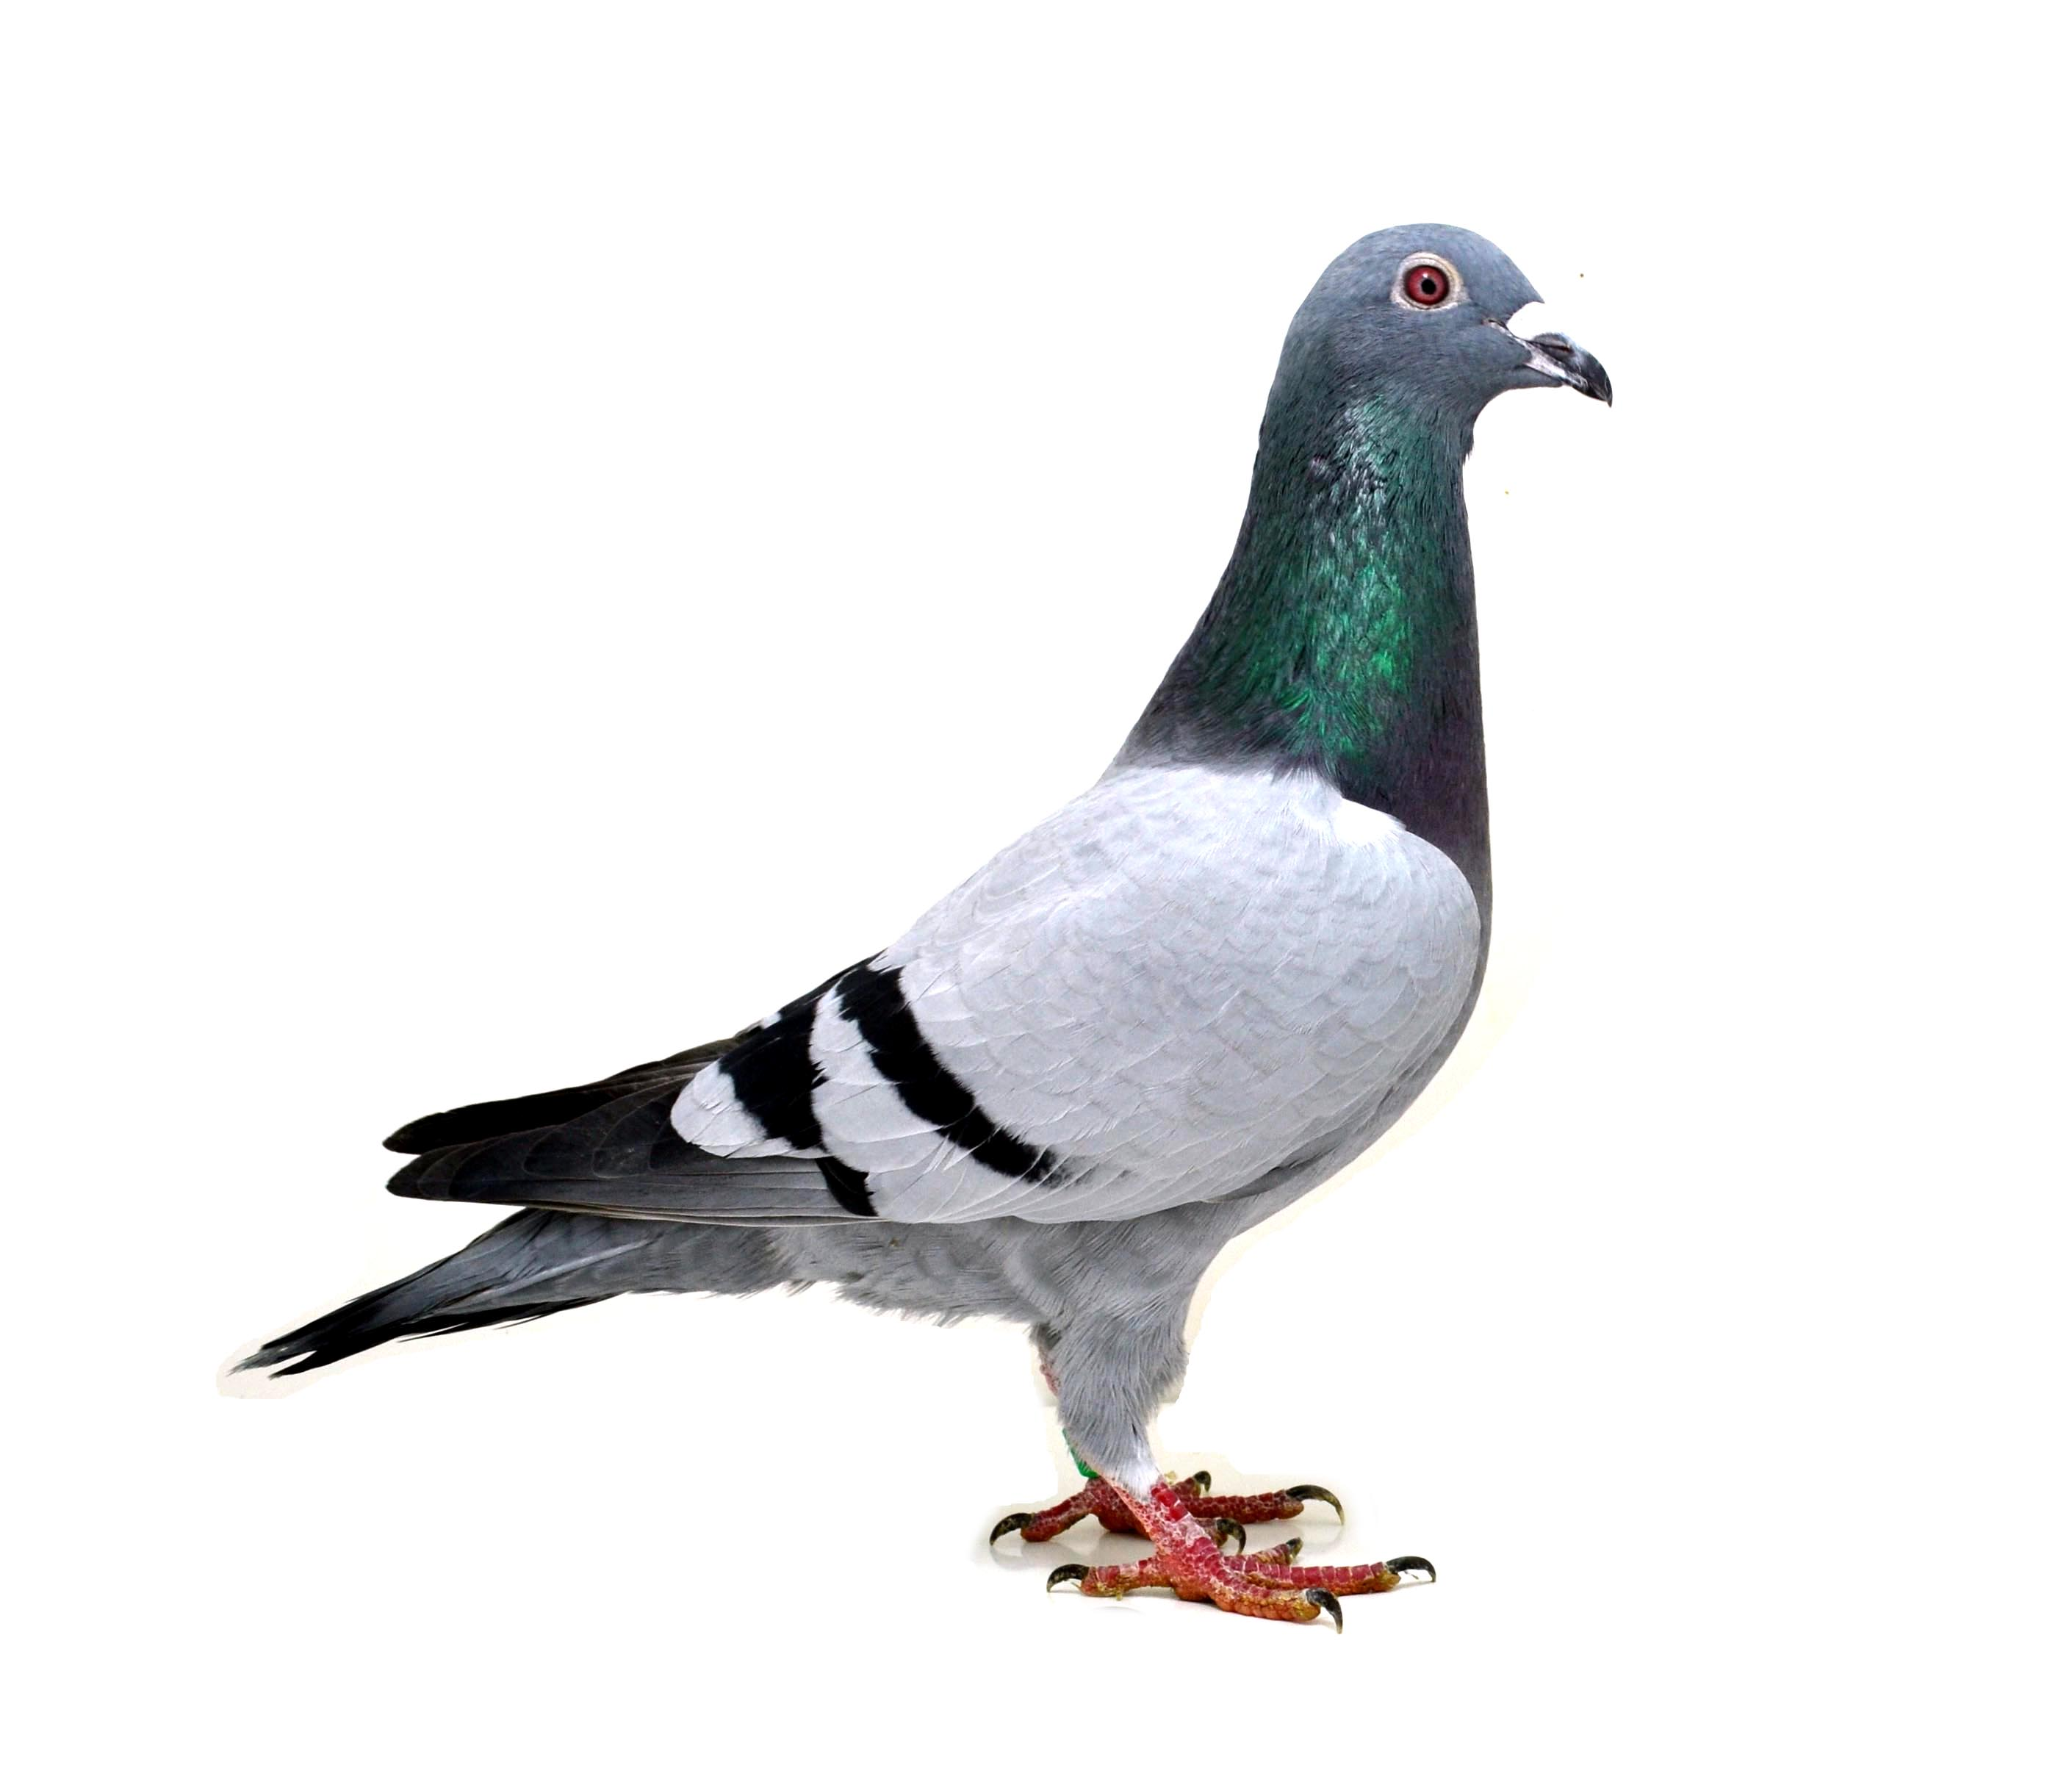 RO 18 552156 M - Half brother 1 Ace pigeon Extrem, 3 Final Extrem etc